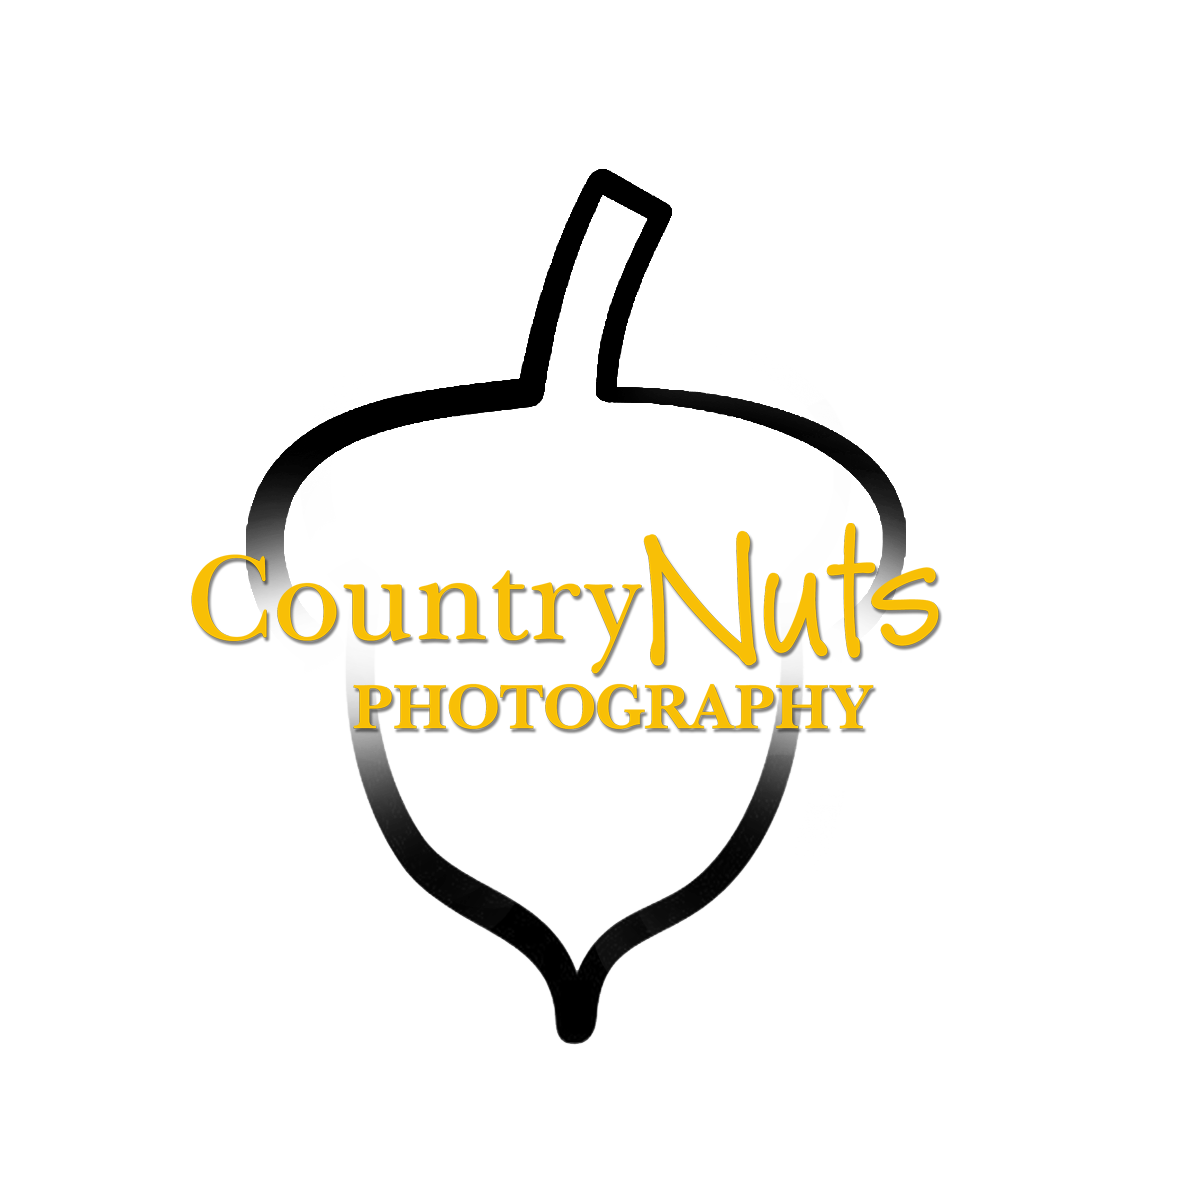 CountryNuts Photography